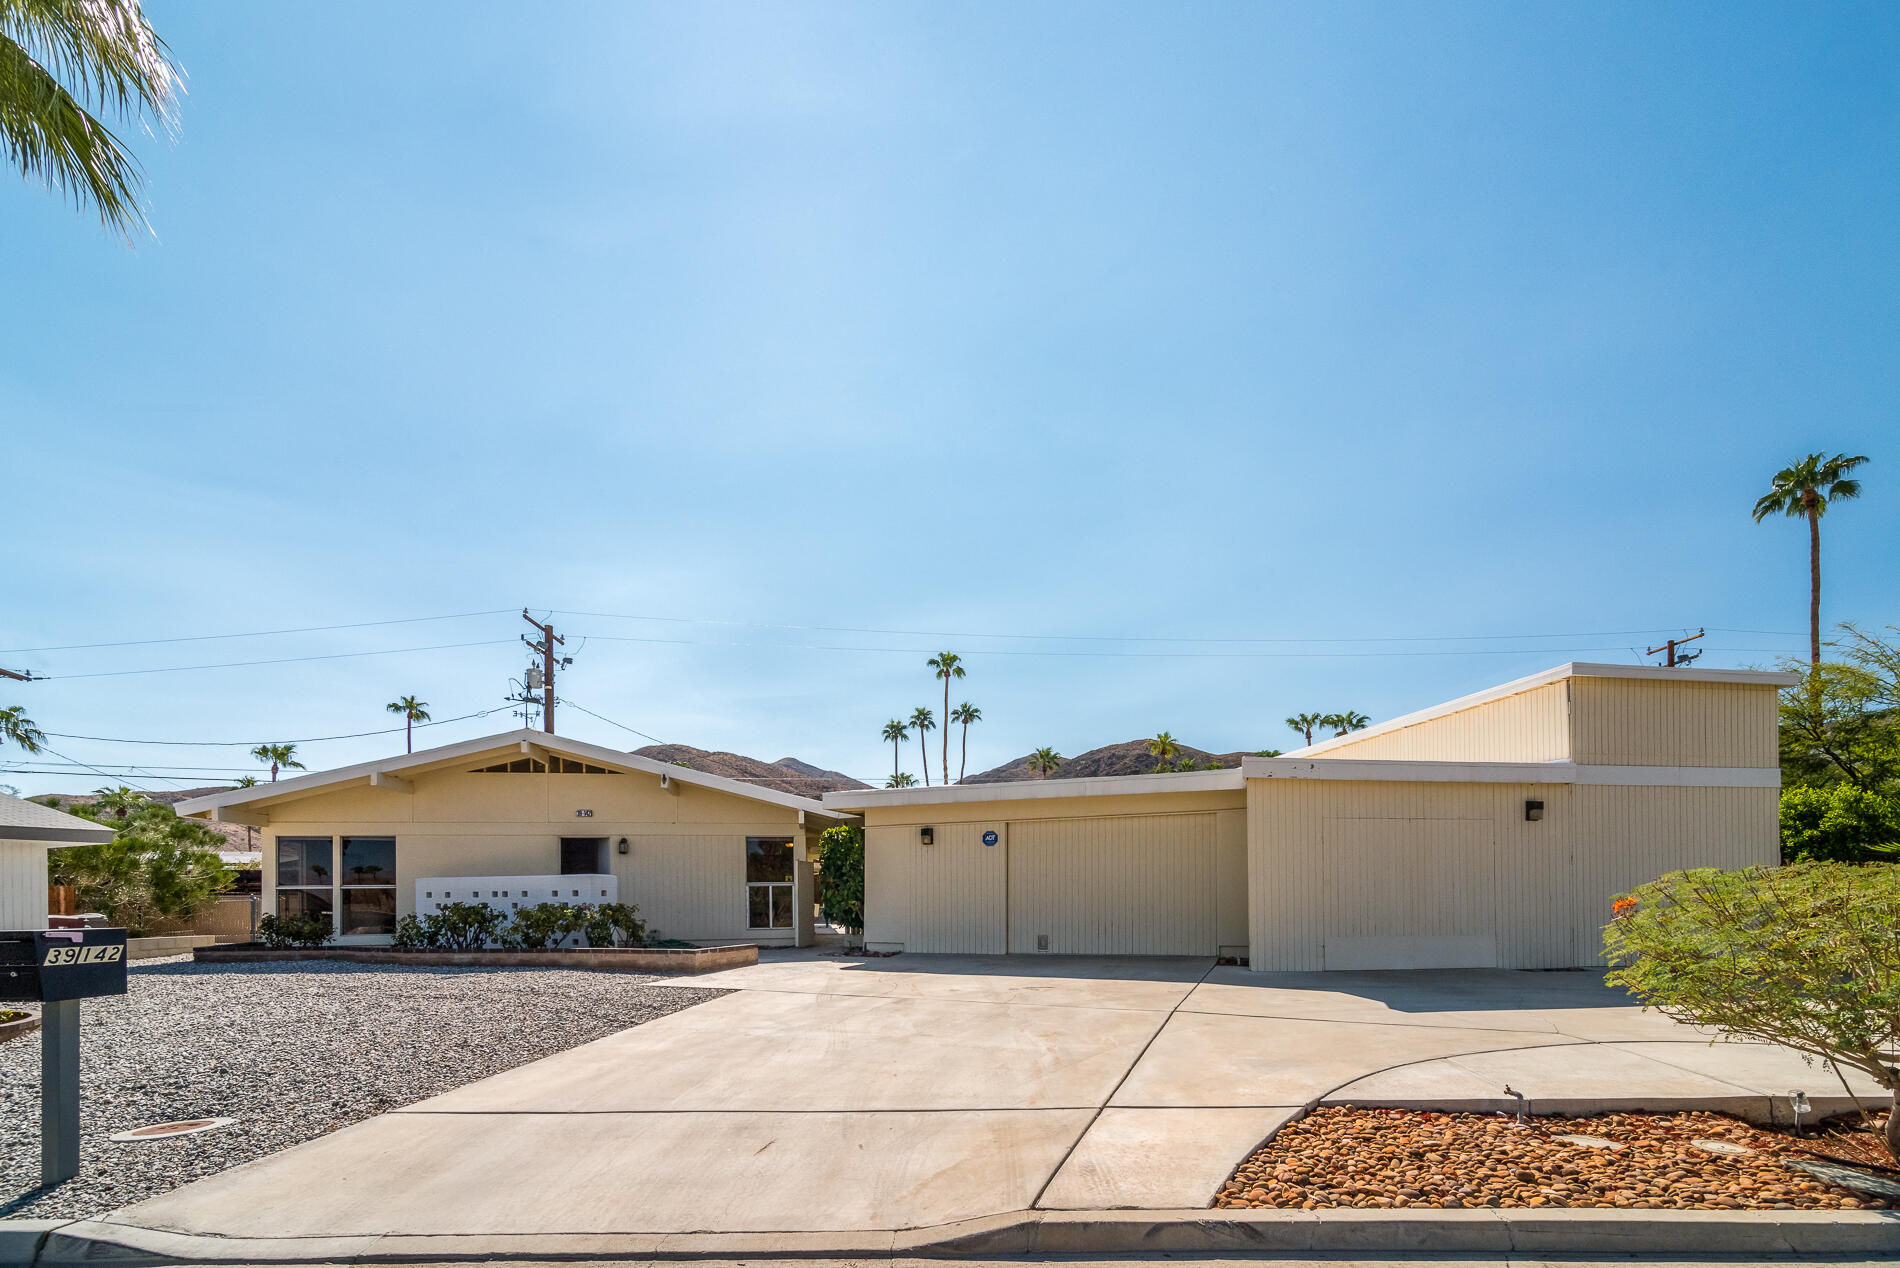 Hi up in the Cathedral City Cove sits this 1961 classic , a 3 BR/2 Bath, 1,560 sqft of living space, Pool and Spa home with a 2 car sized garage and a Motorhome garage to boot with sewer and water hookups. The home has been well maintained and was owned by the same family for decades.  Features of the home include upgraded appliances in the kitchen, a living room -Dining room combined, a breakfast counter, a large multi purpose room that works well as a TV room, Study or Den. And outside, the back patio Has a gas BBQ, a very good size pool/spa that is currently drained, and lots of covered patio space. The detached 2 car garage has a working black room for film developing, this can be converted back to a full 2 car space. The bonus garage accomodates a large motorhome and golf cart or any other outdoor toys quite adequitely. Home is connected to sewer and assessment is paid in full. Dont wait to long, homes are moving very quickly in this very desirable Cove area!